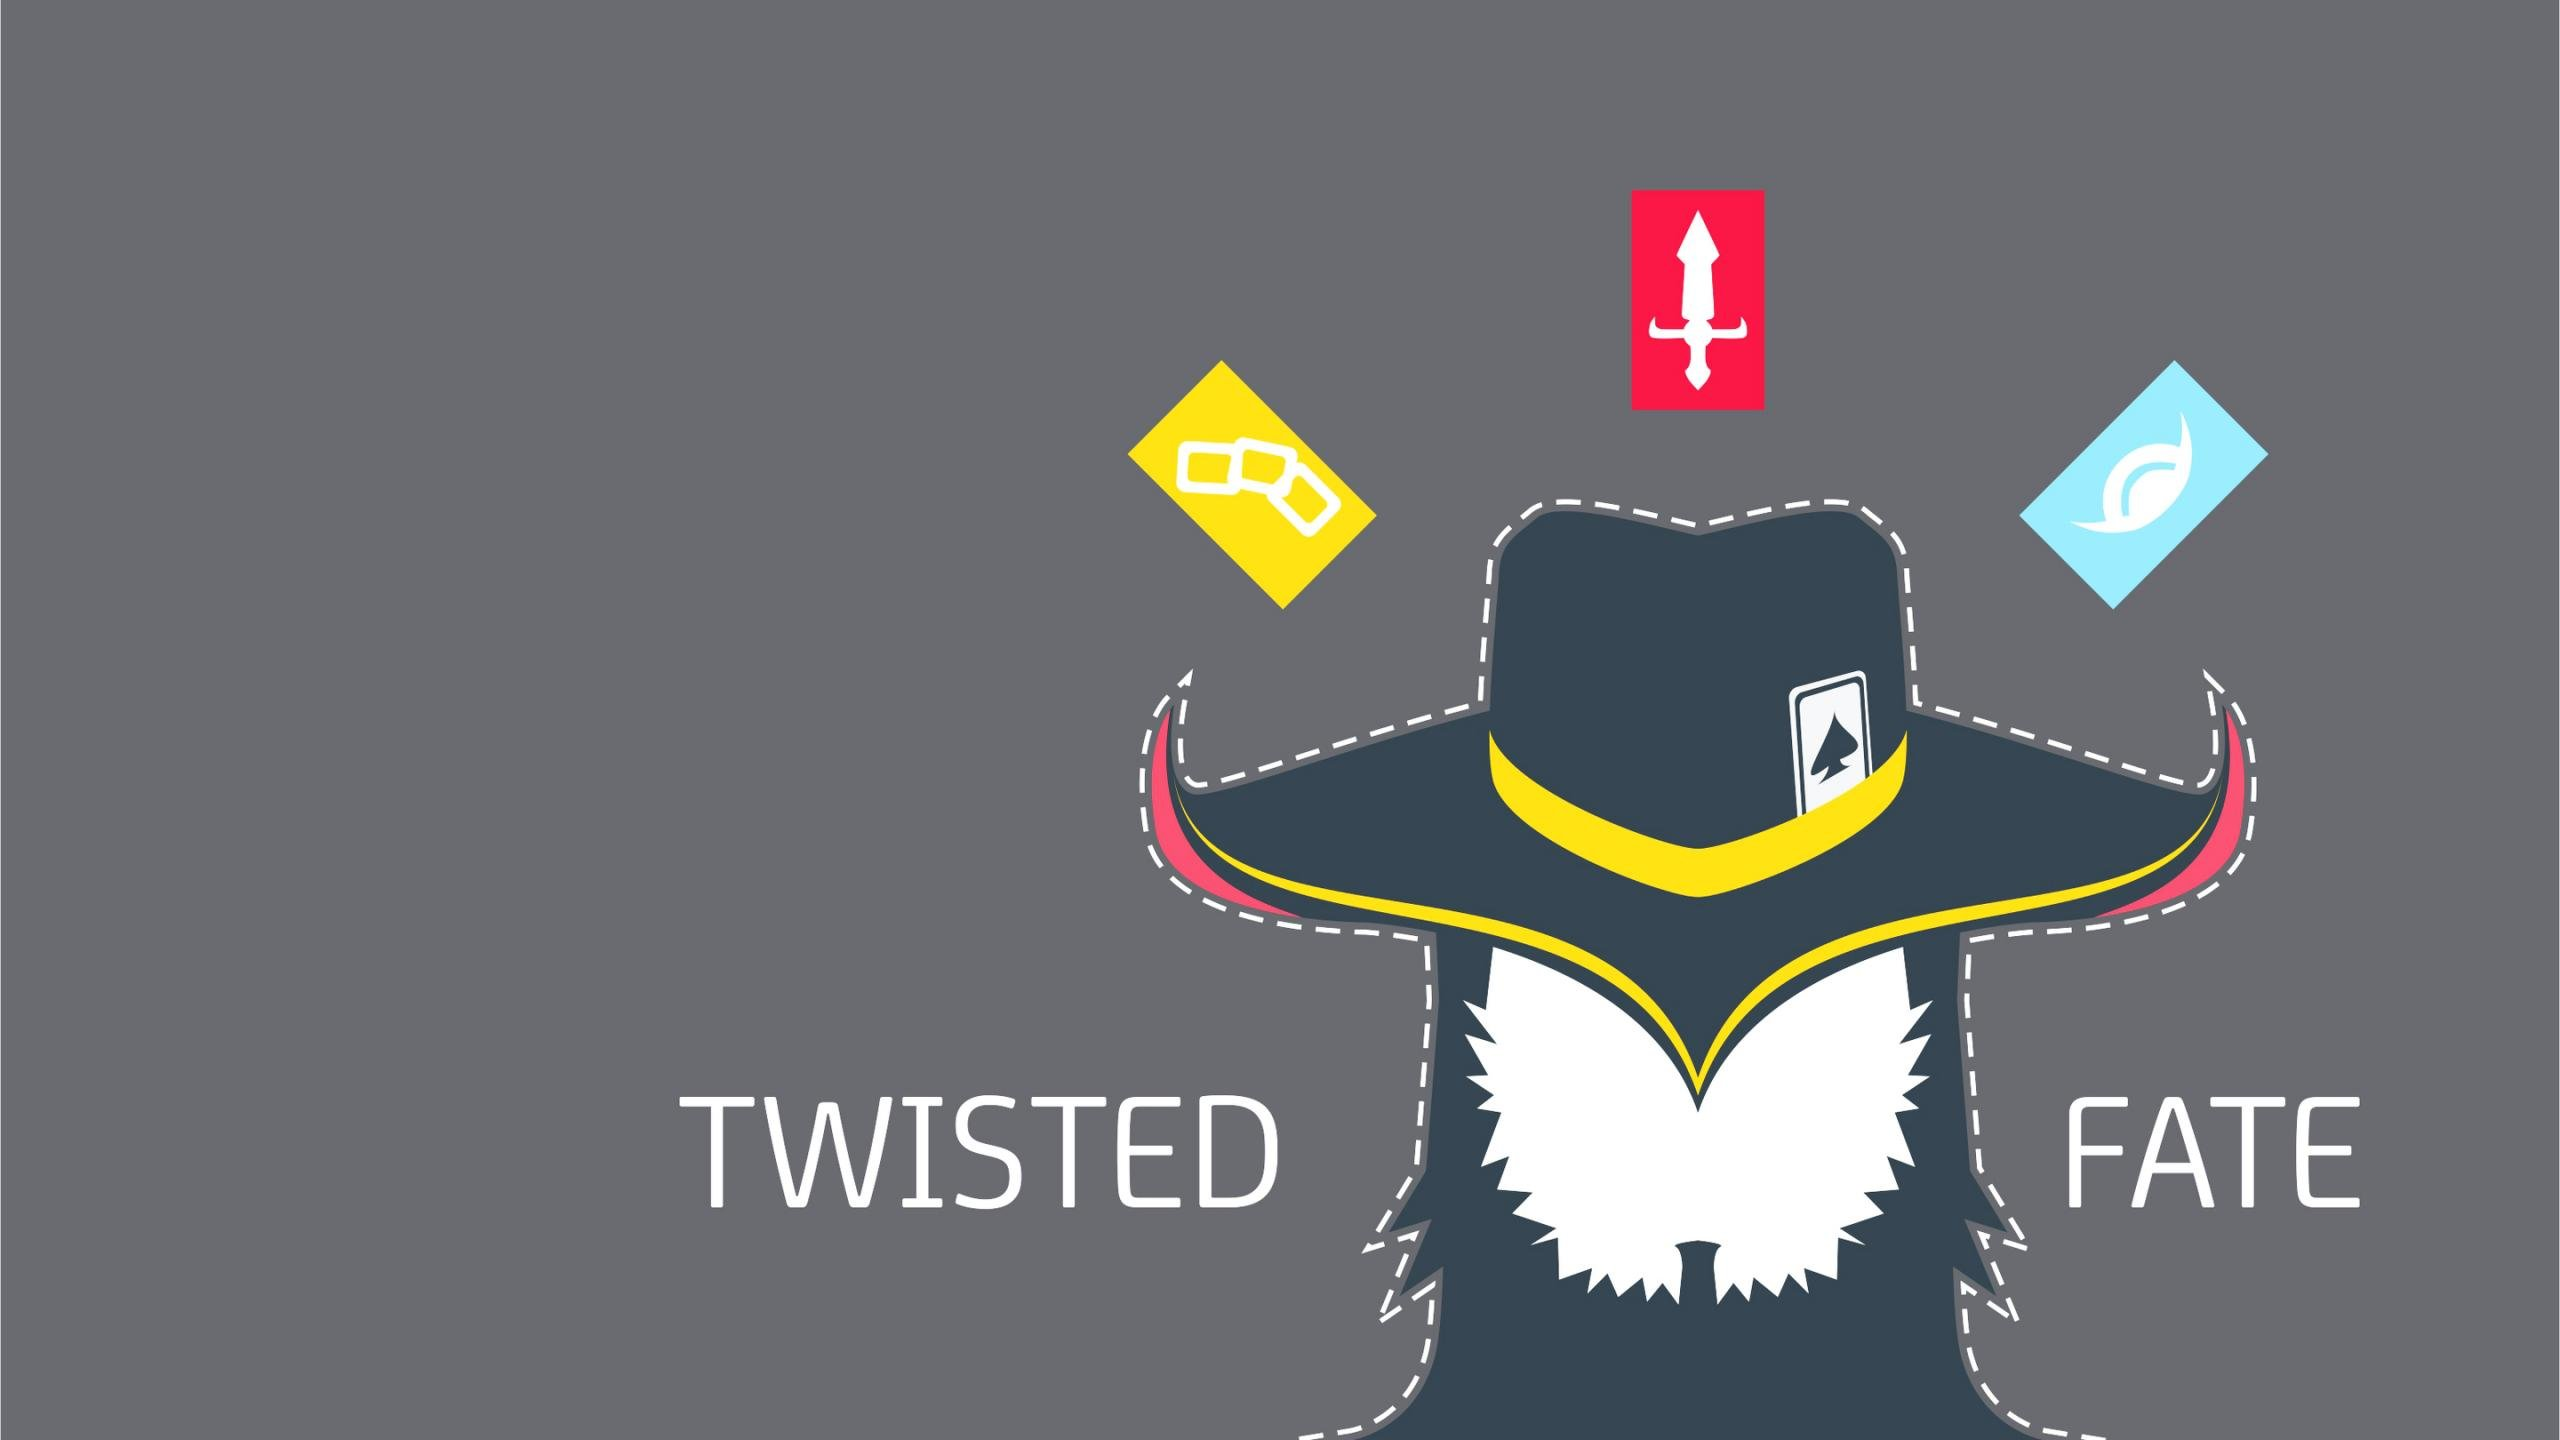 Free download twisted fate league of legends wallpaper id173045 free download twisted fate league of legends wallpaper id173045 hd 2560x1440 for computer voltagebd Images